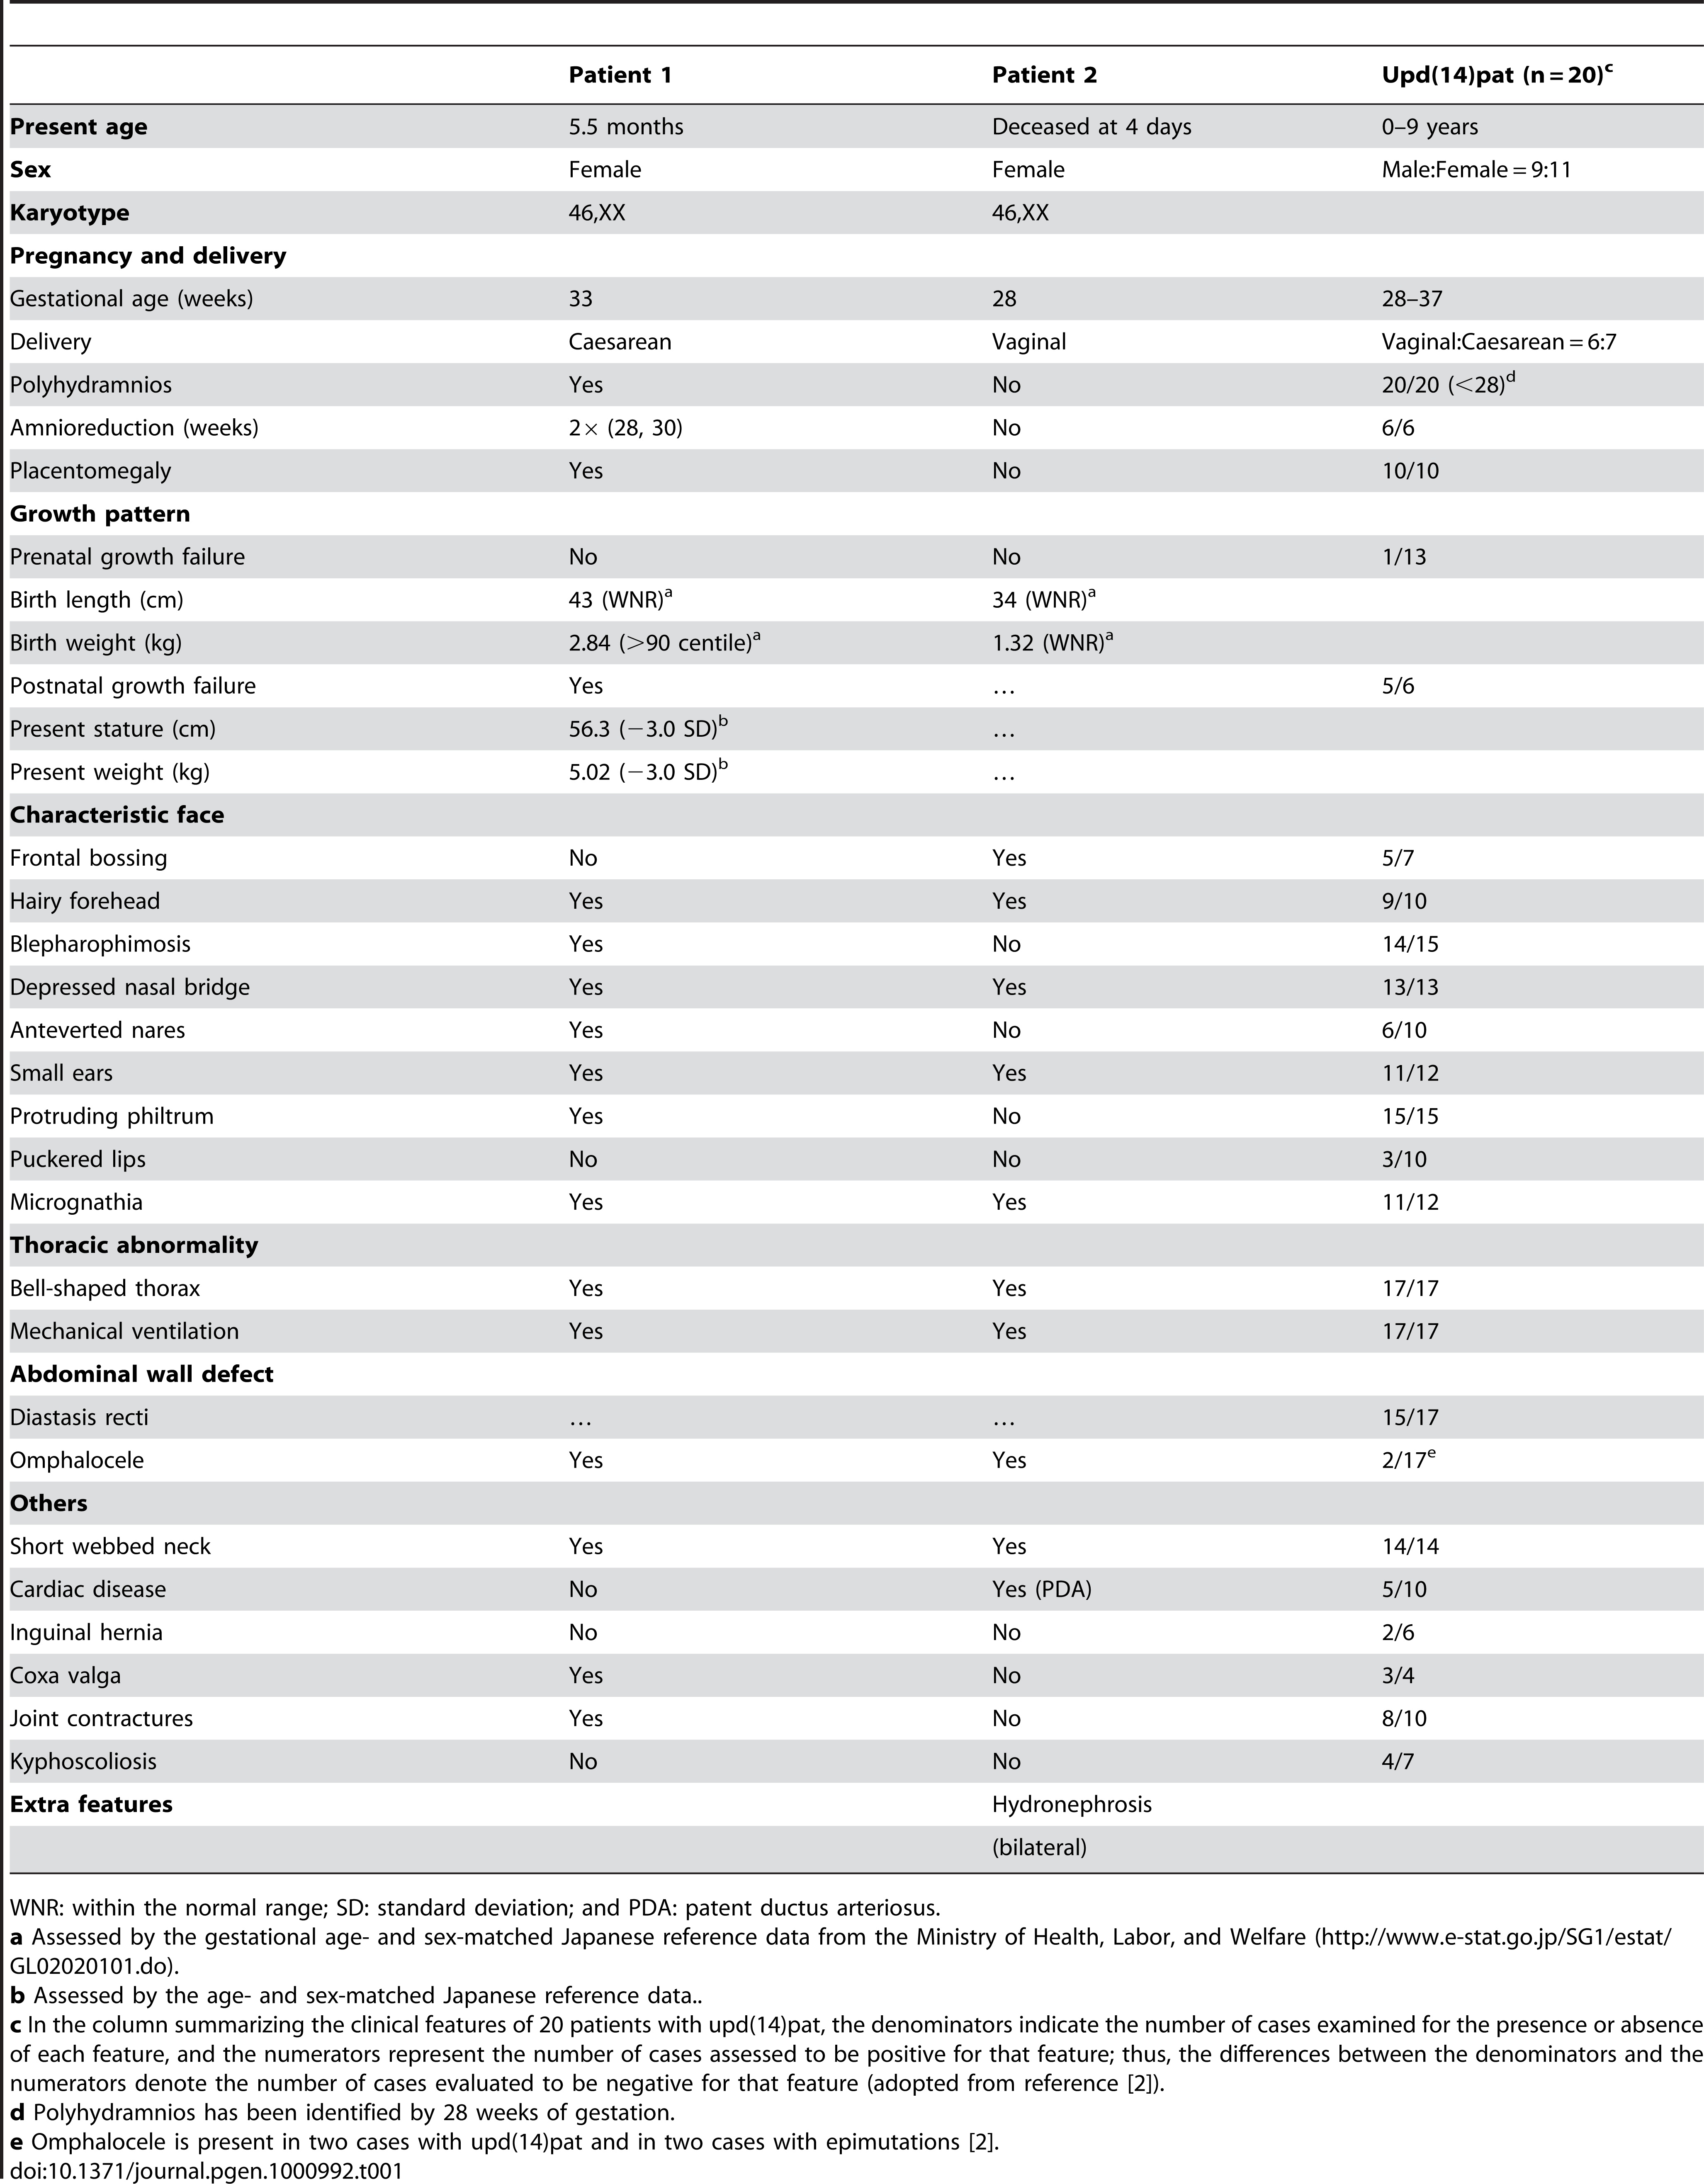 Clinical features in patients 1 and 2.